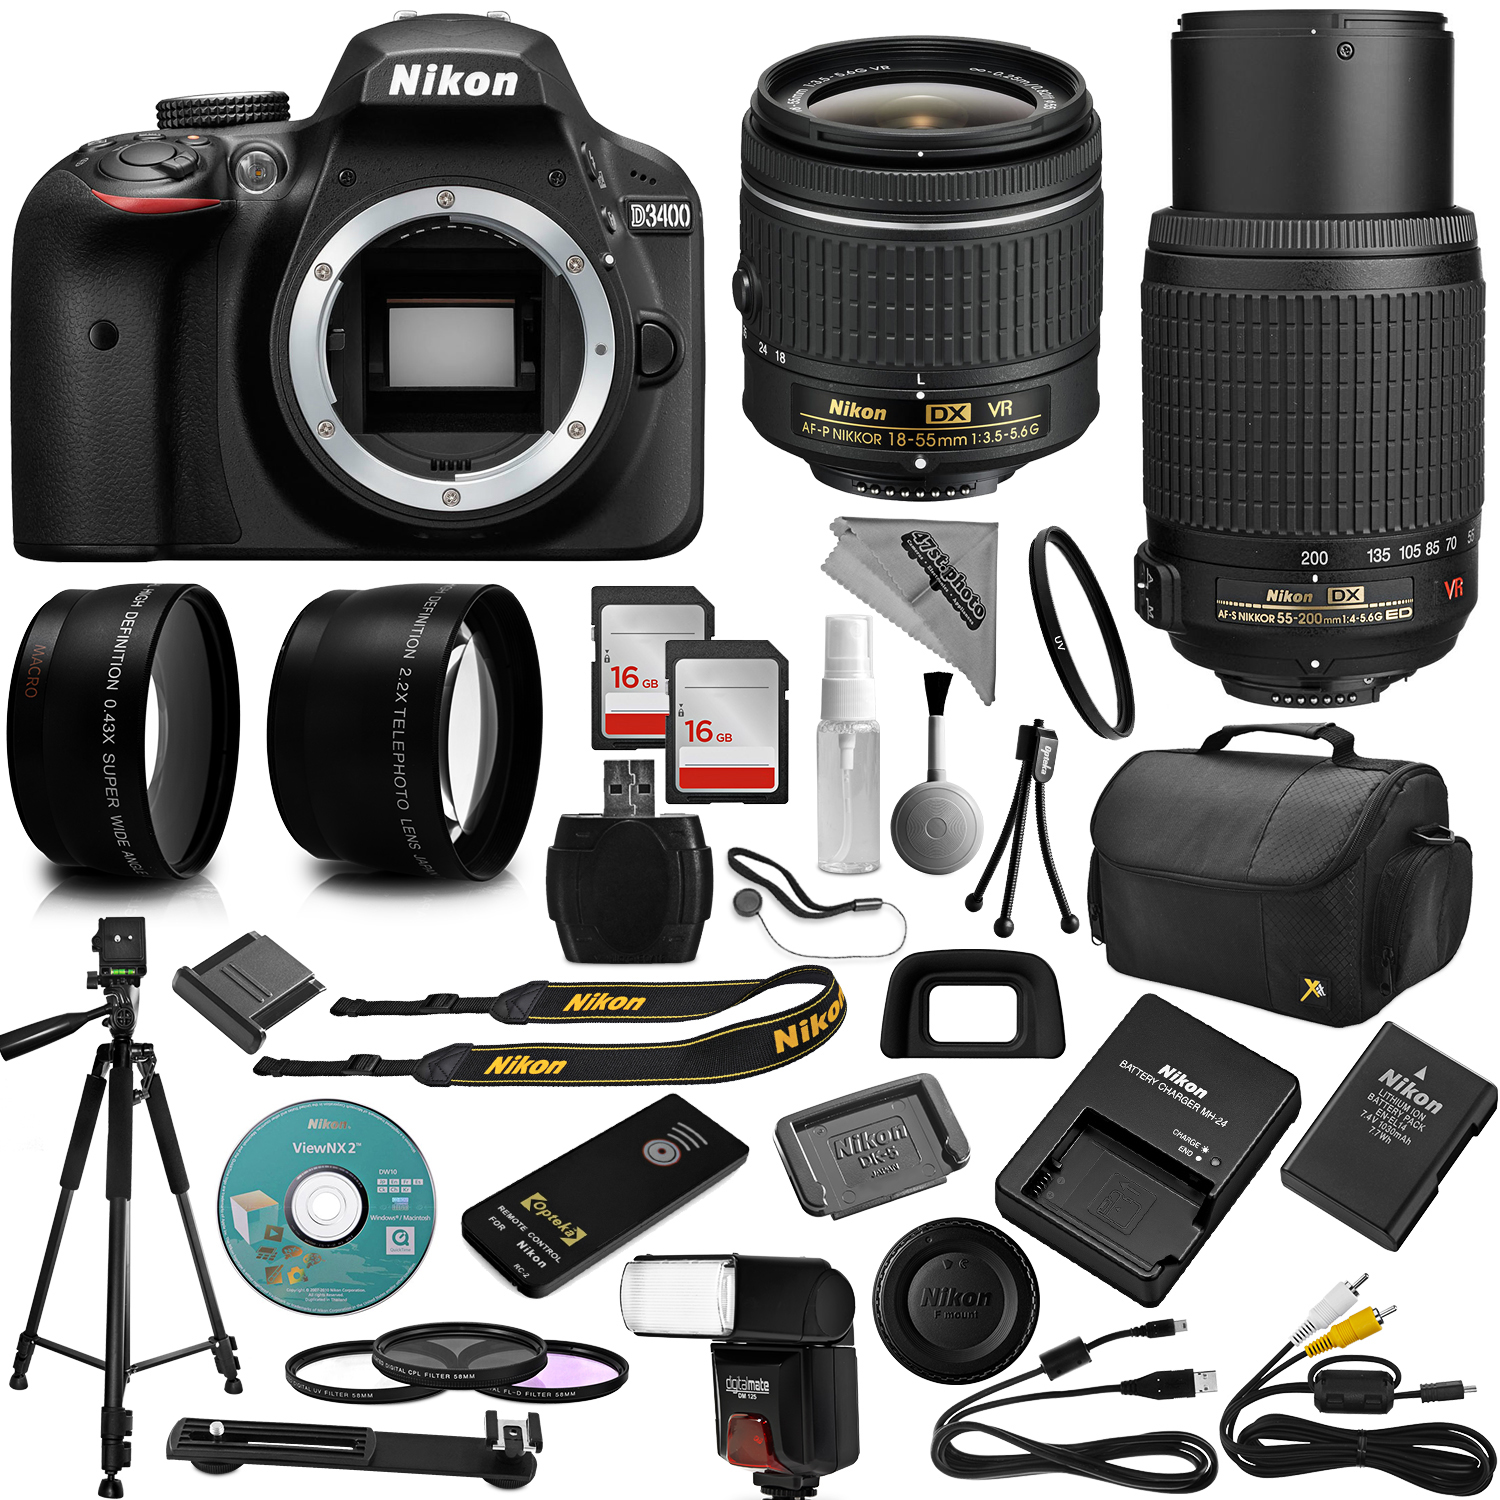 Nikon D3400 DSLR Camera + 18-55mm and 55-200mm AF-P DX VR + 32GB Memory + 2.2X Telephoto and 0.43X Macro Lense Kit + Bounce Swivel Flash + Tripod + Padded Case Bag + UV CPL FLD Filter Bundle + Remote